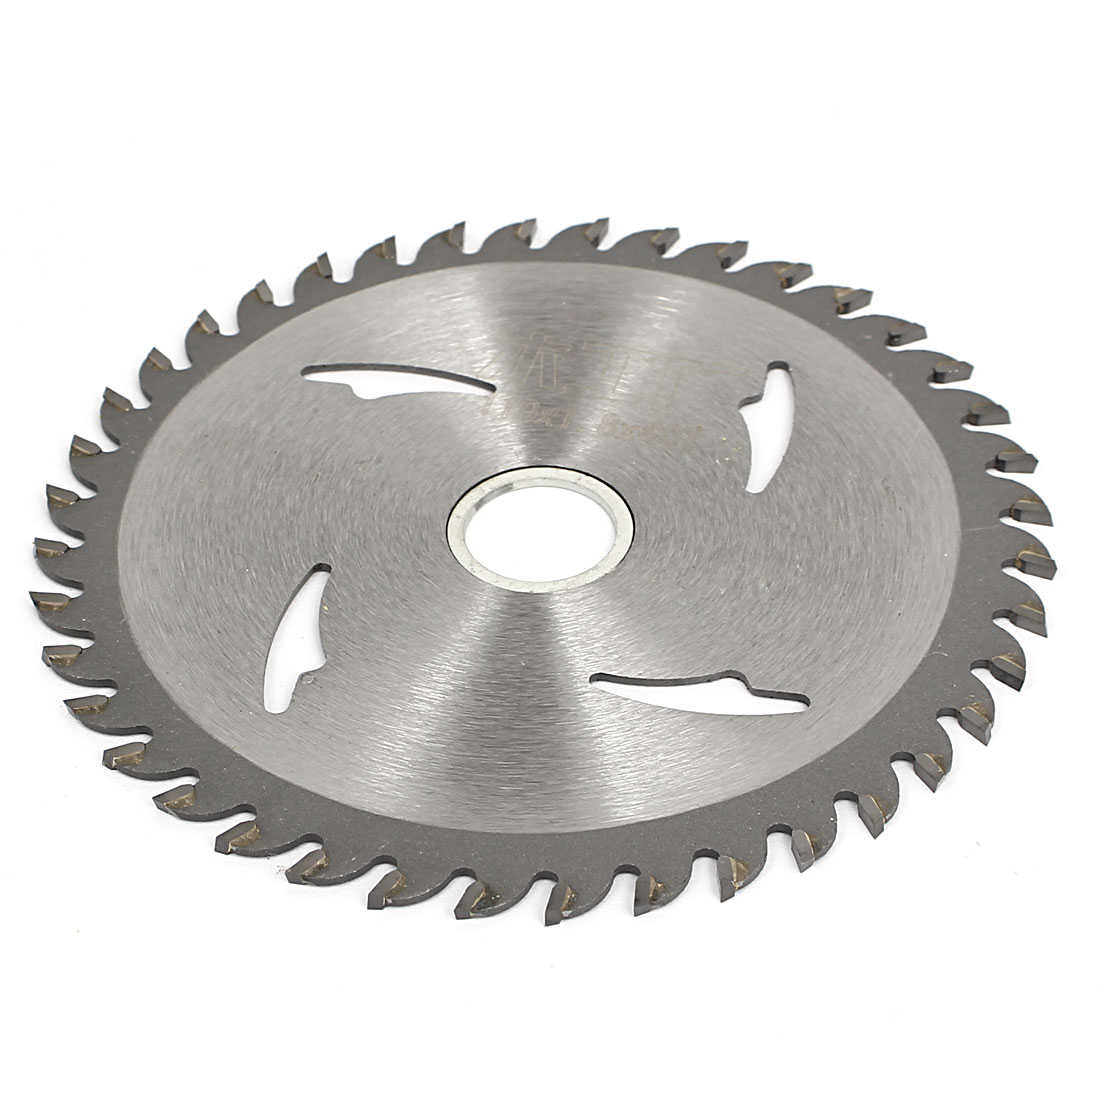 Unique Bargains 105mm x 20mm x 1mm 40 Teeth Circular Cutting Saw Blade Cutter Hand Tool